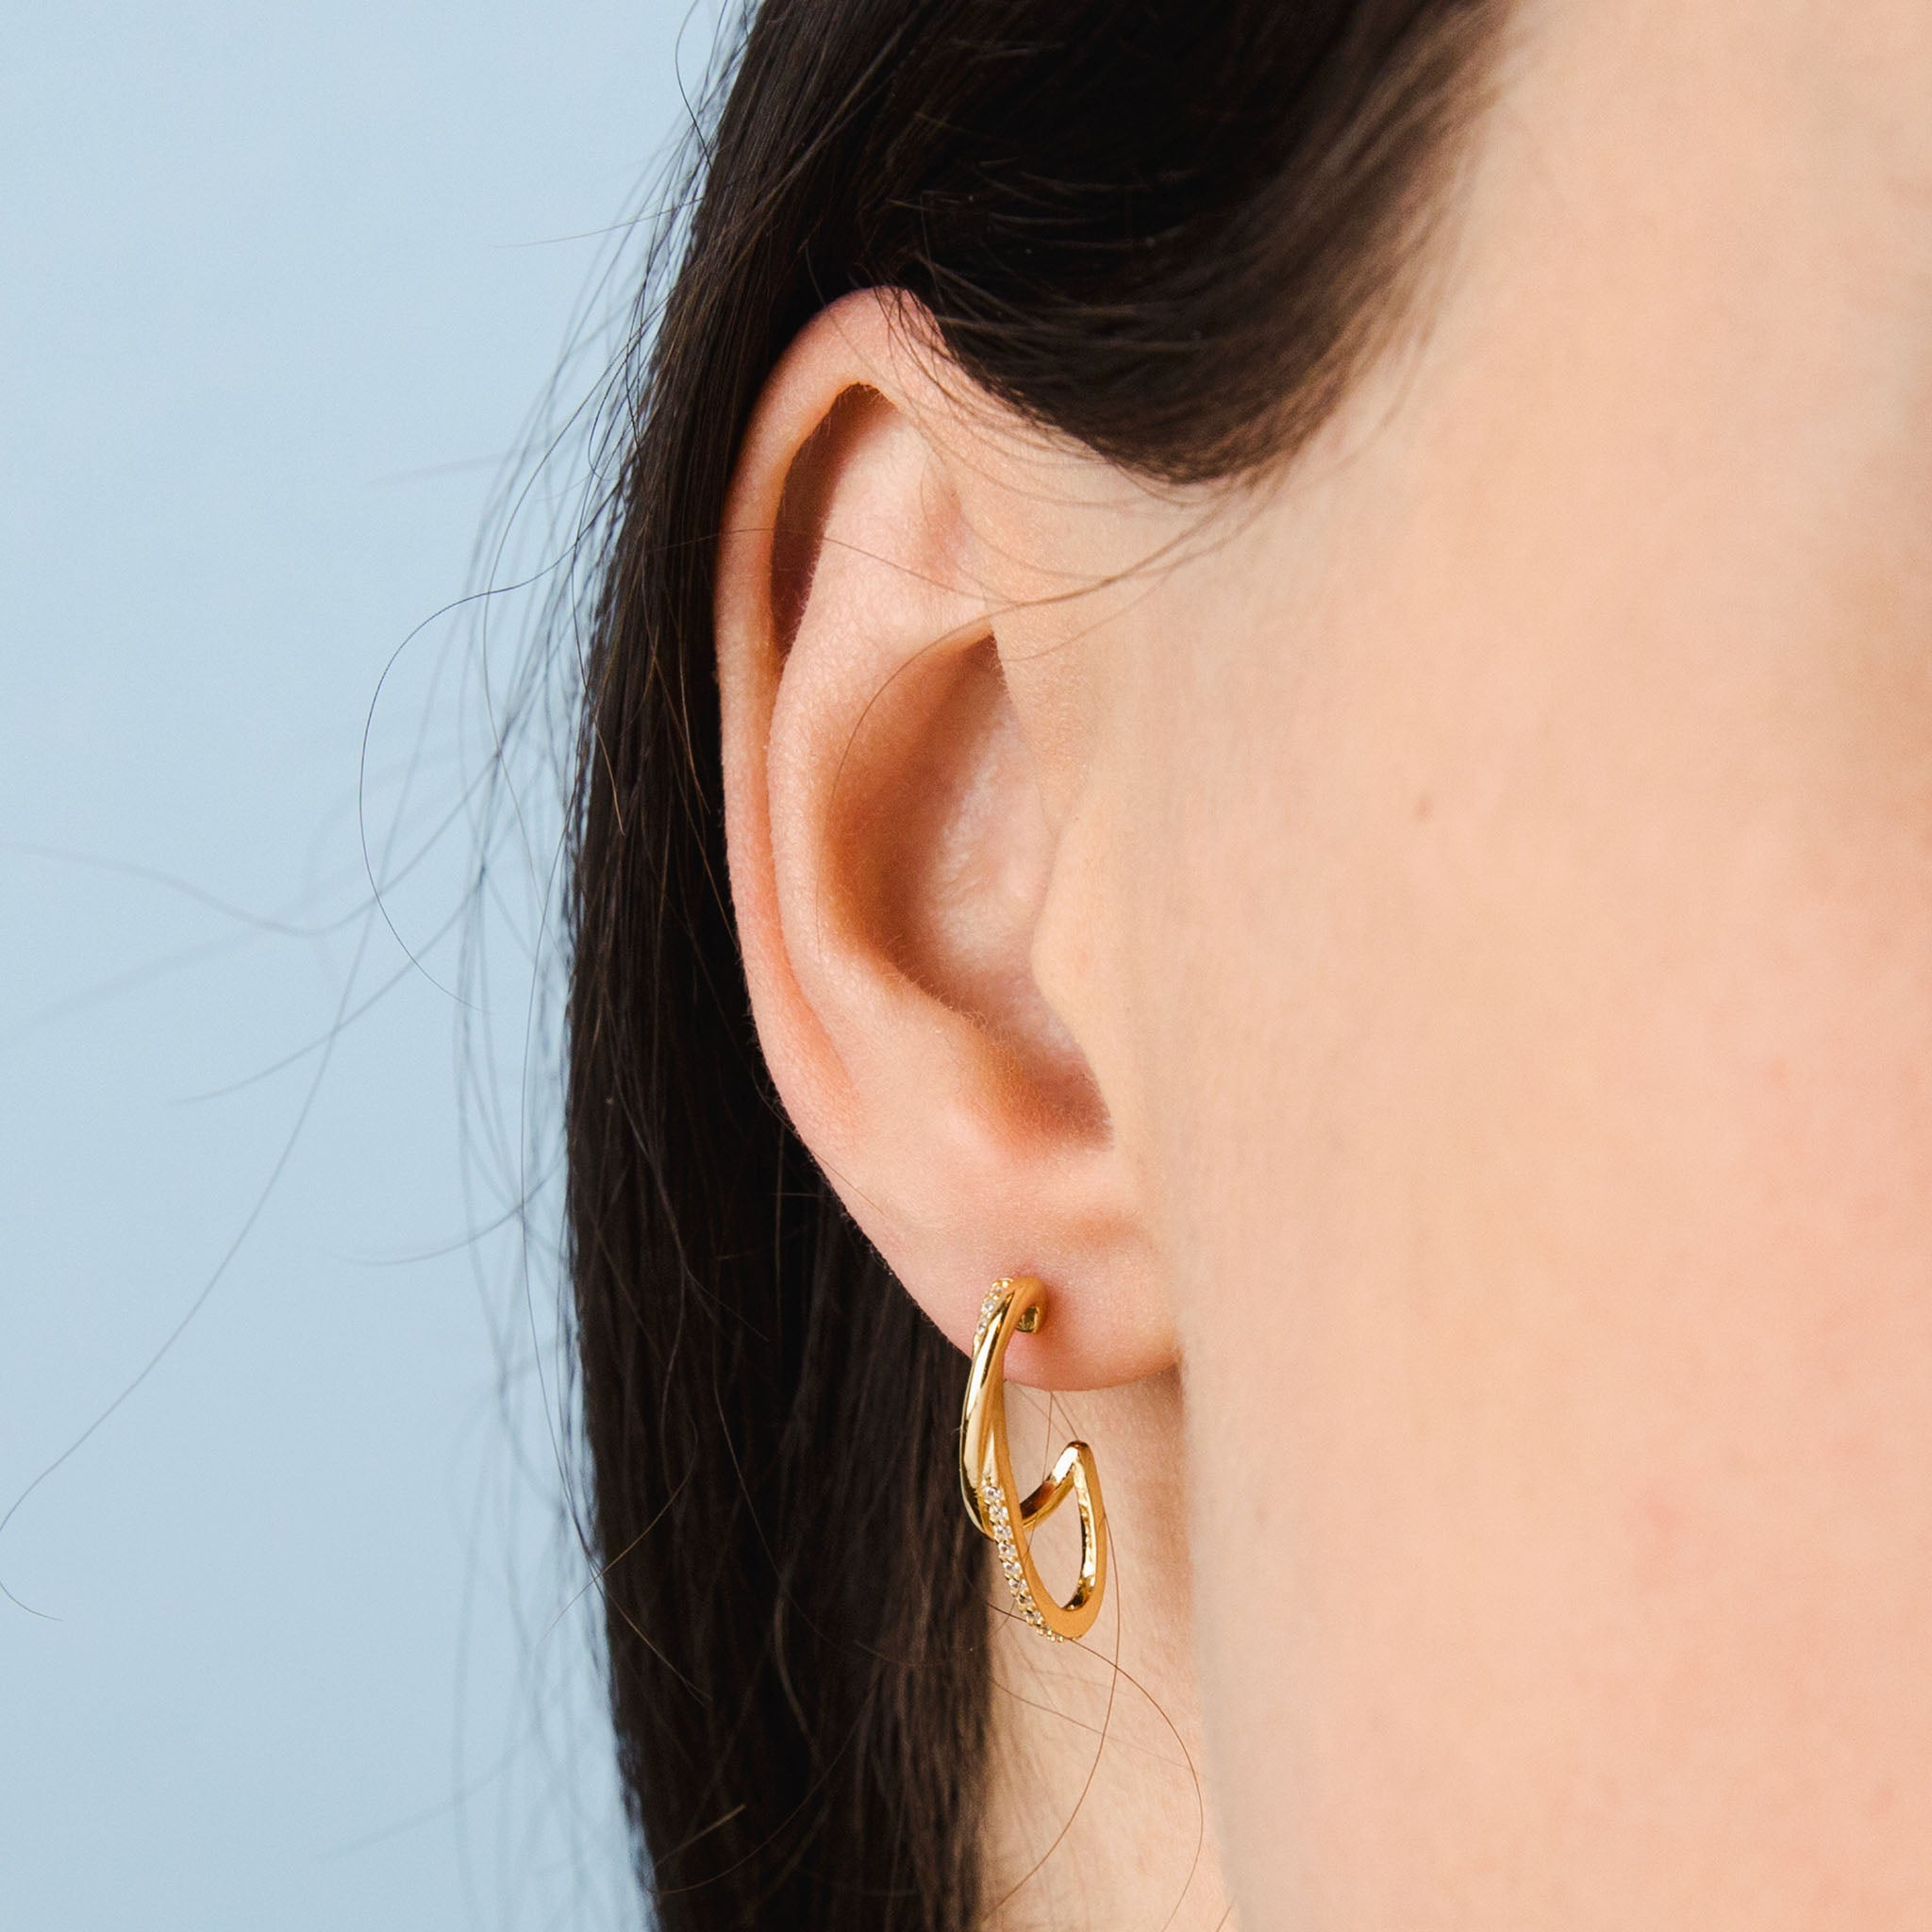 Gold Sparkly Double Layered Hoop Earrings